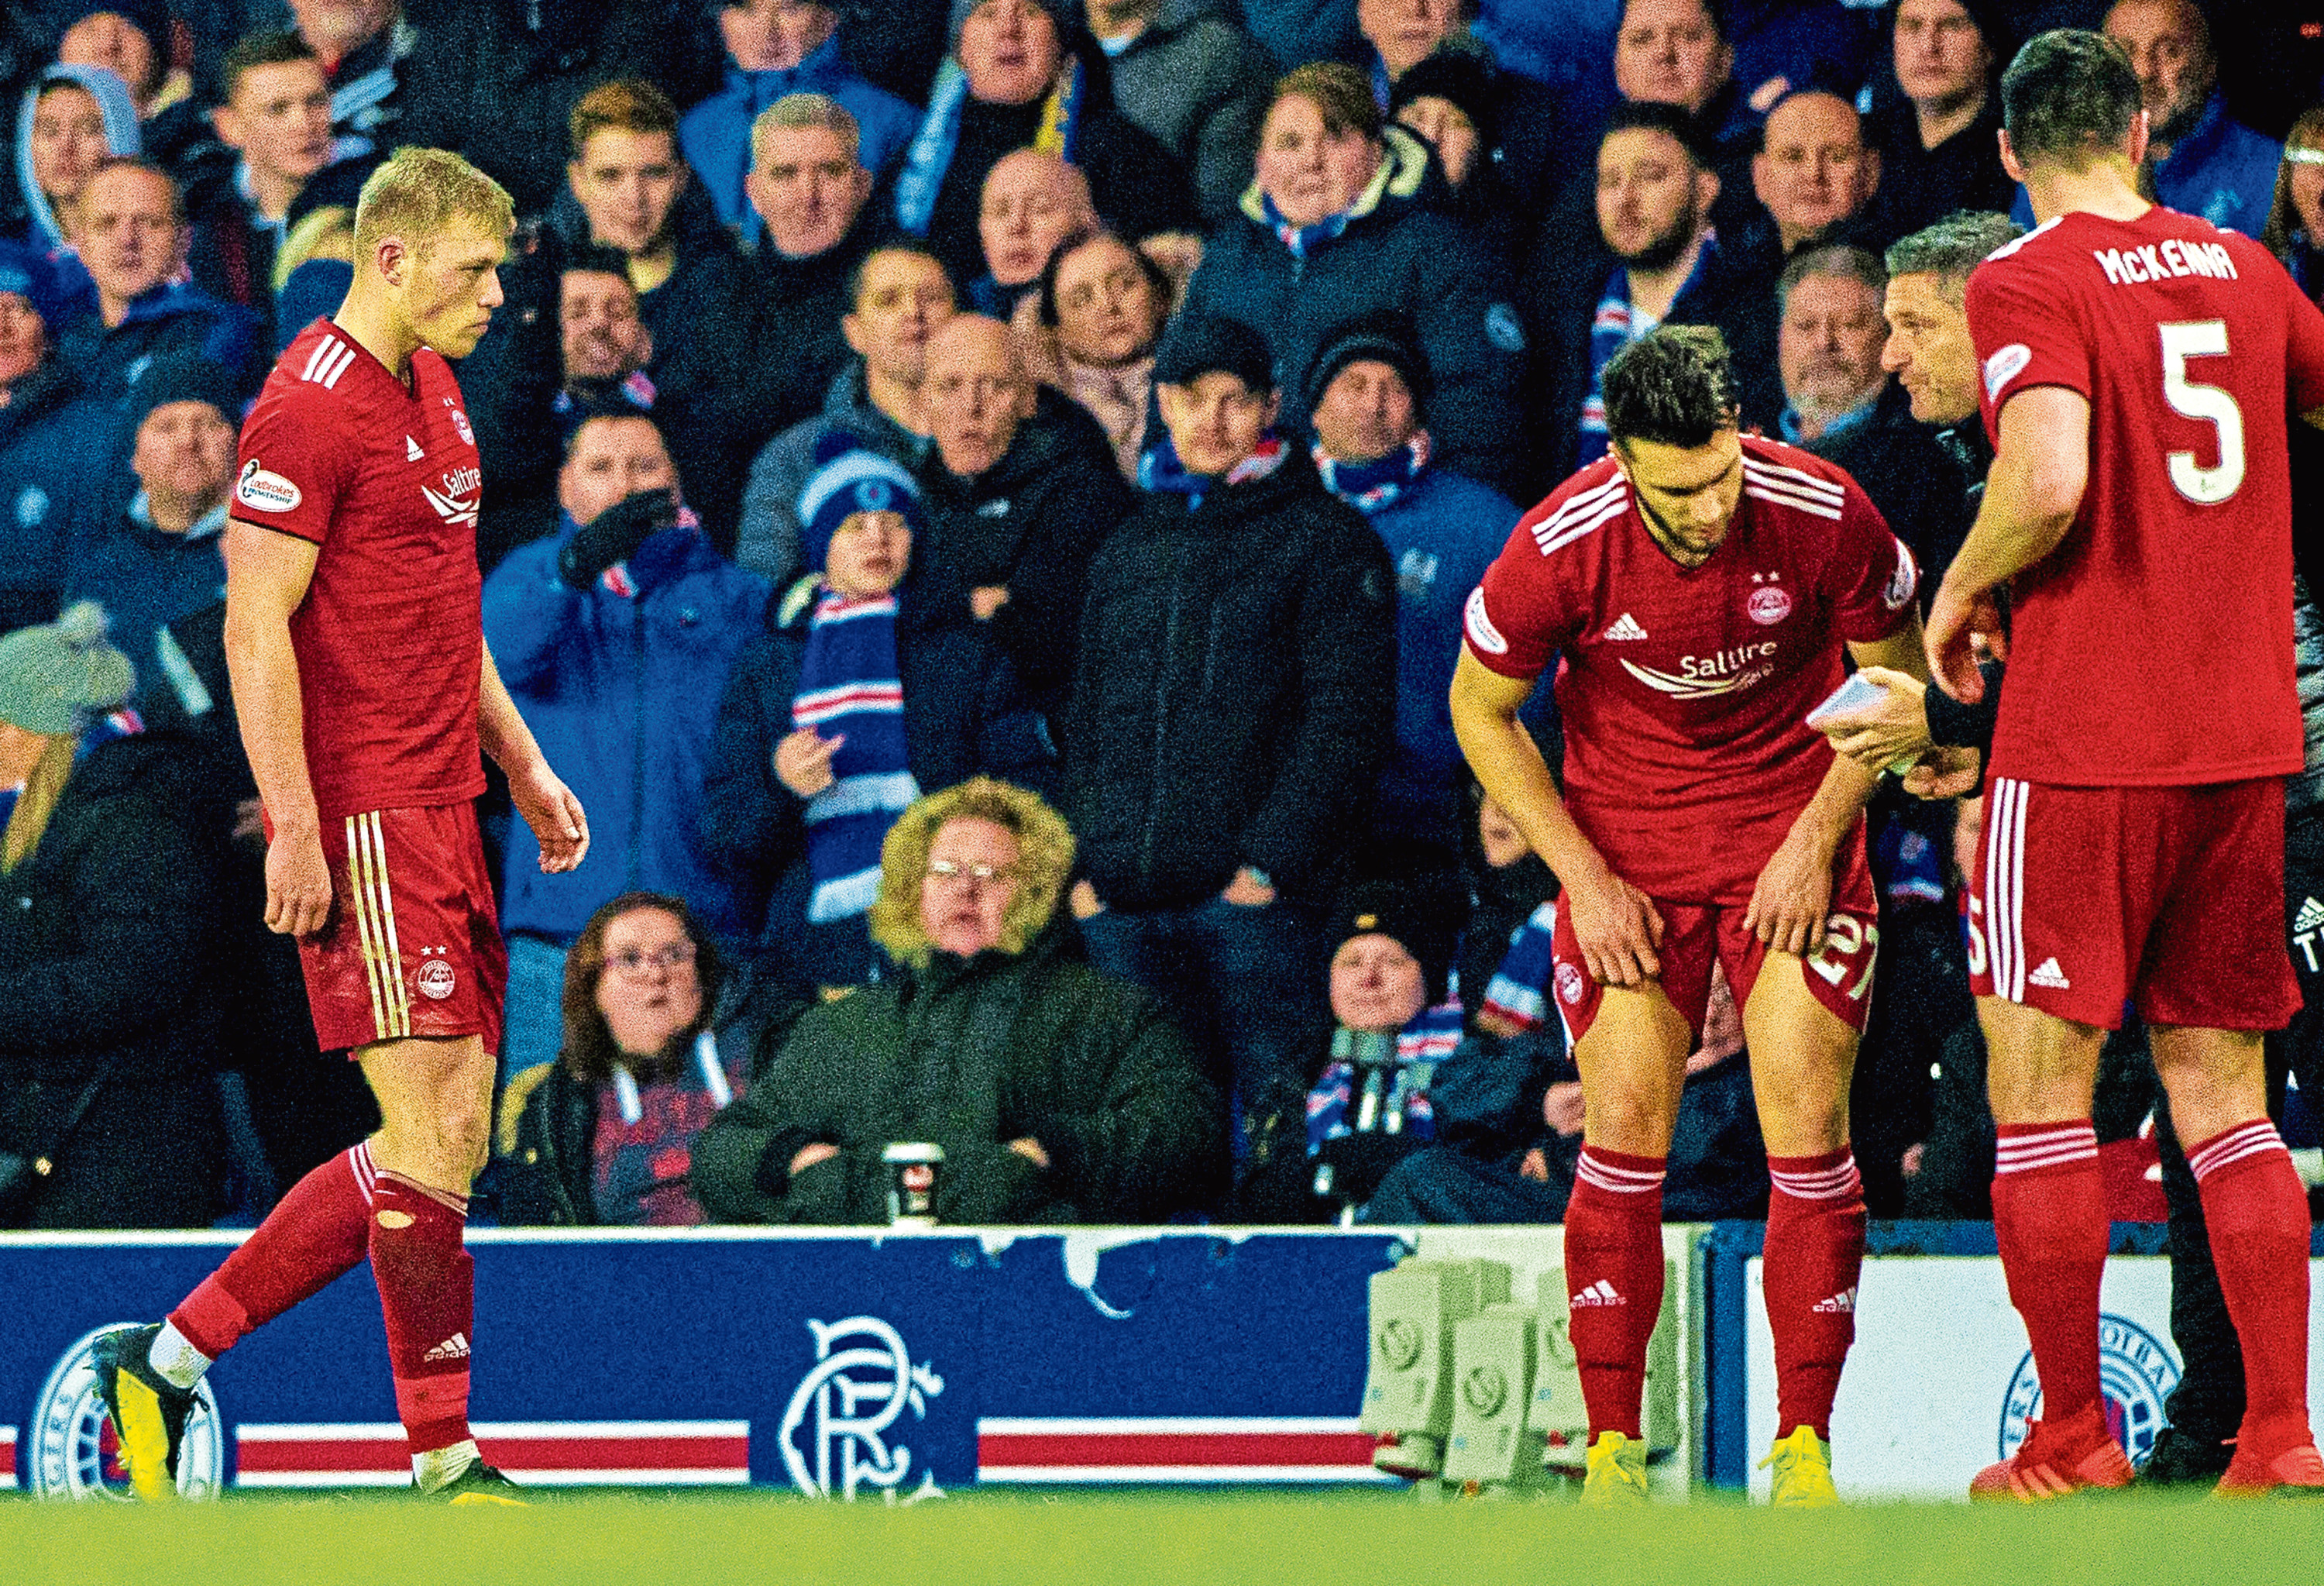 Aberdeen's Sam Cosgrove leaves the pitch after receiving a red card from referee Steven McLean at Ibrox.